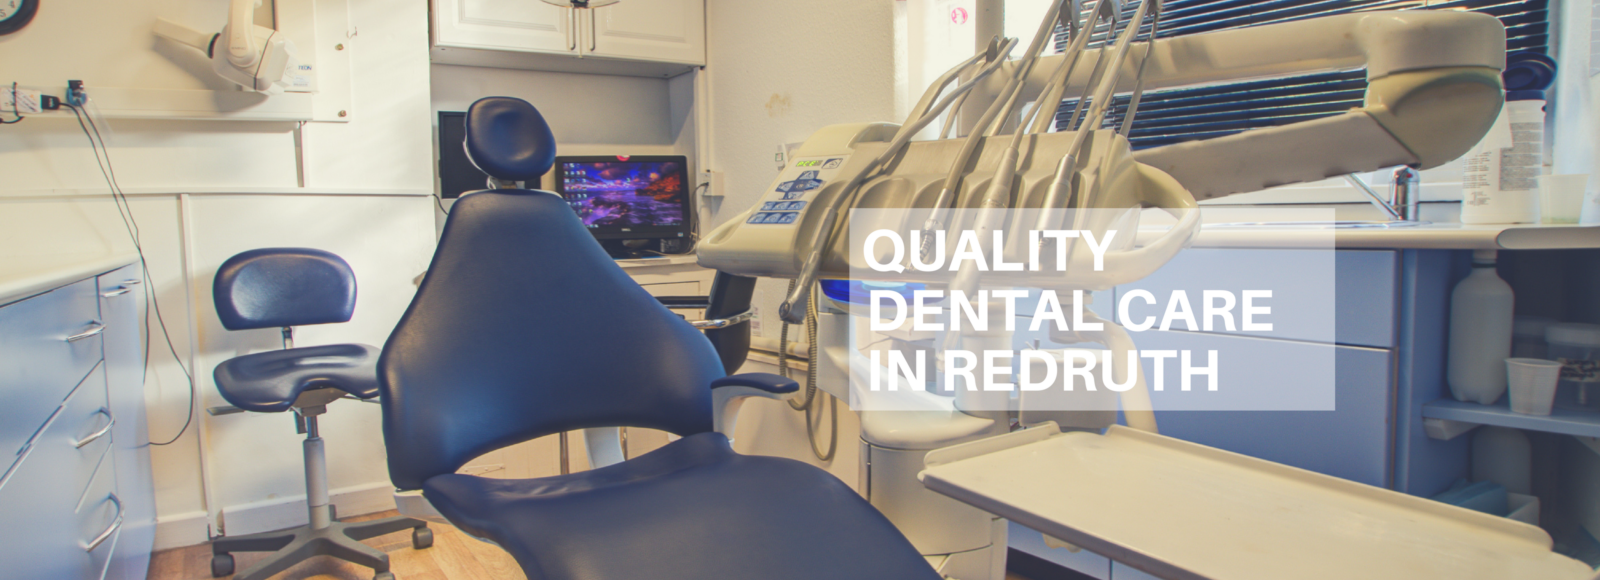 Dental Care in Redruth